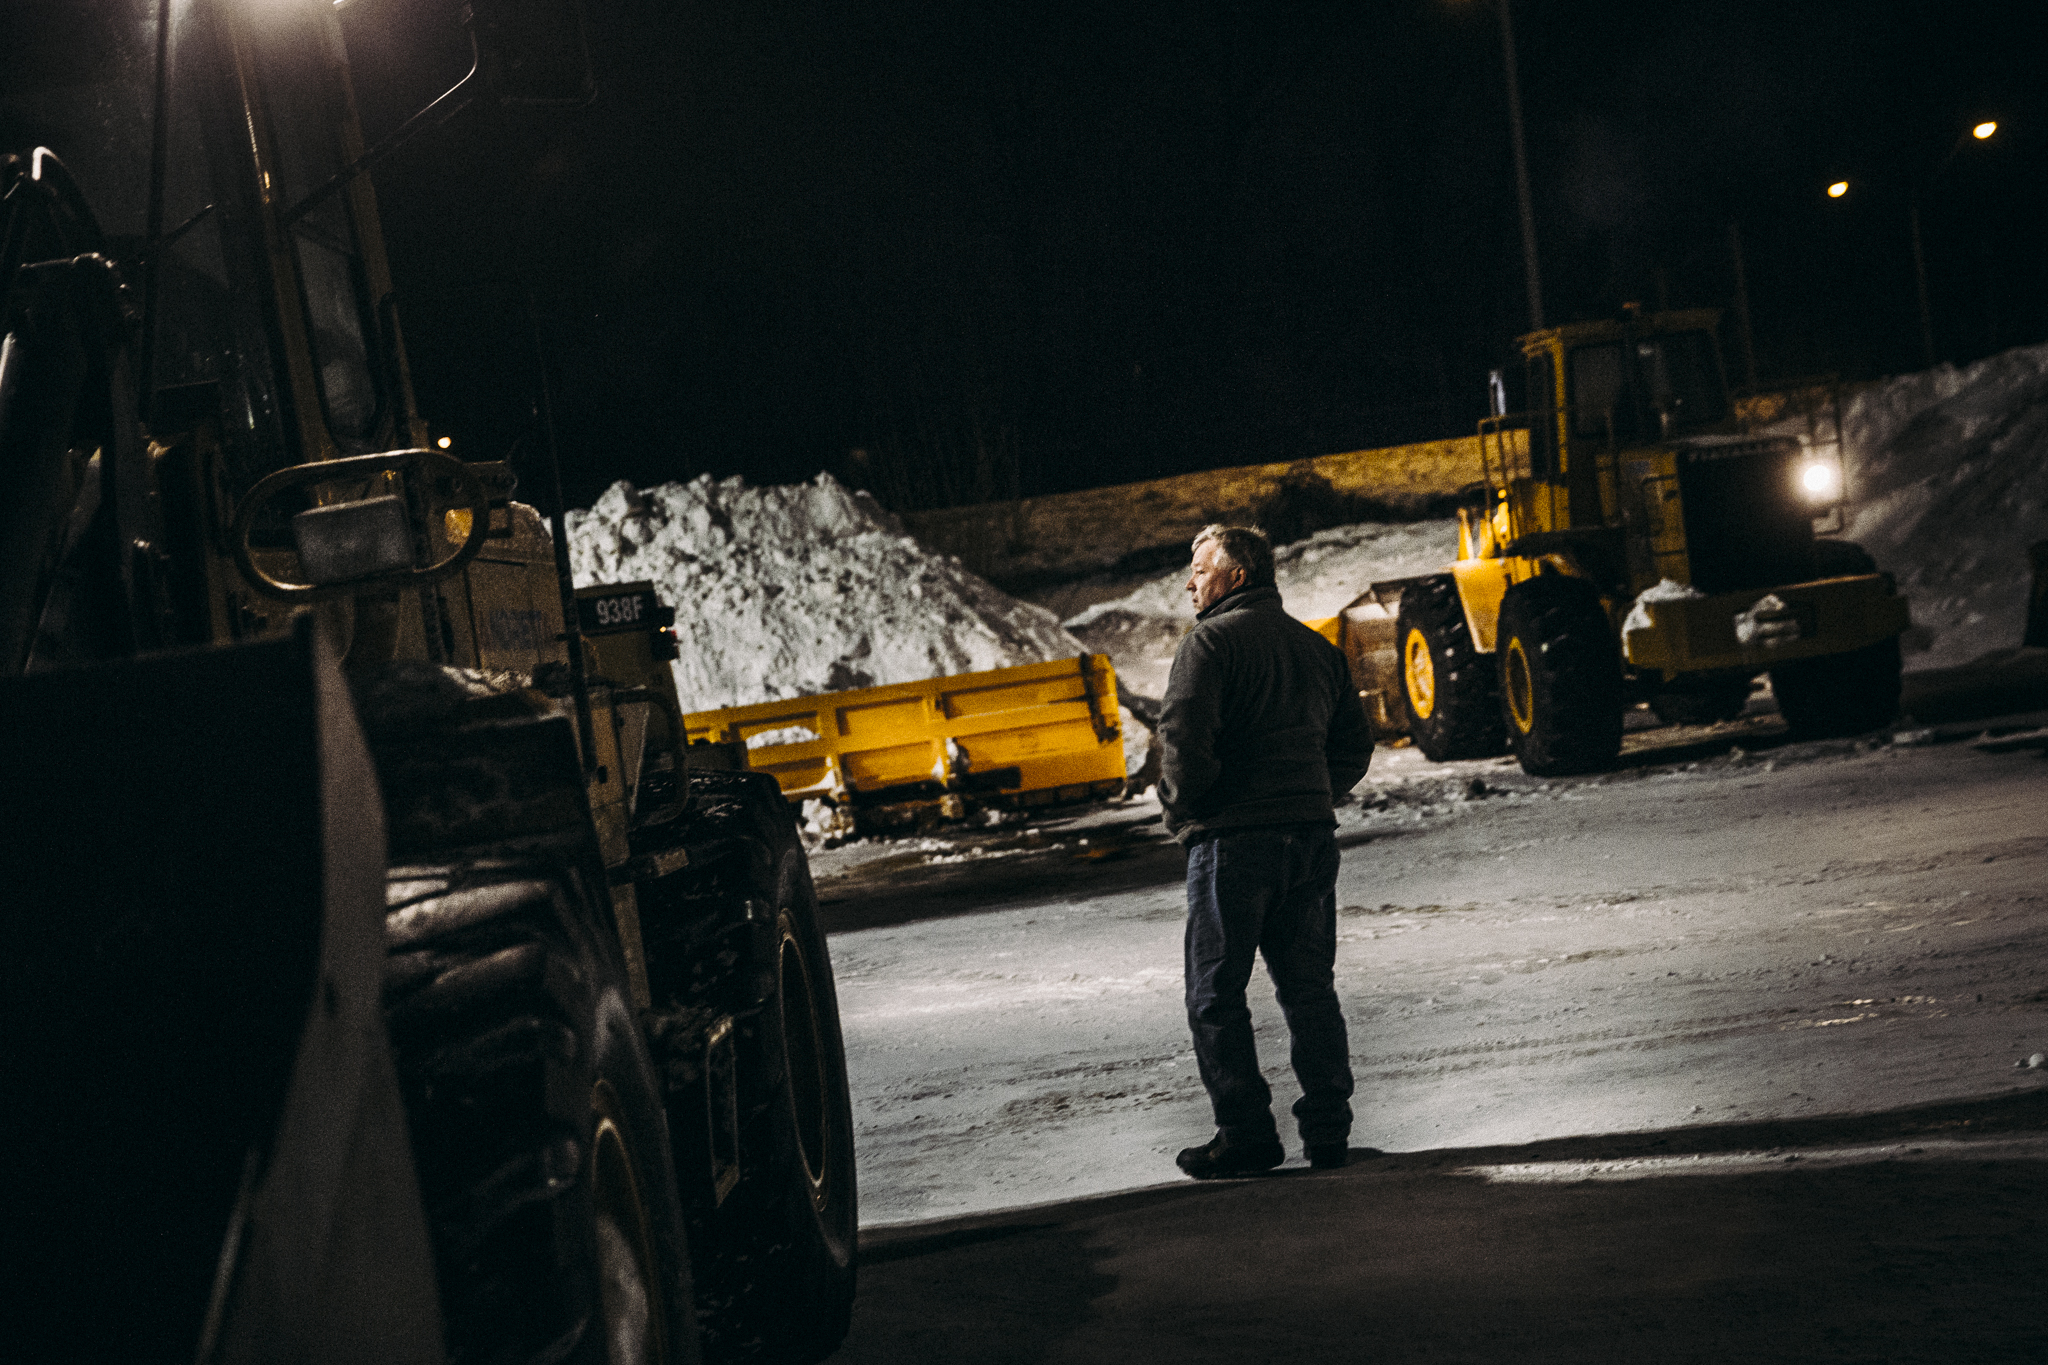 John Riley, who managed the night's project for OnSite, surveys the Solar St. parking lot before work began late Thursday night outside of Destiny USA. Crews began working at 11 p.m. and will continue to work until 8 a.m.